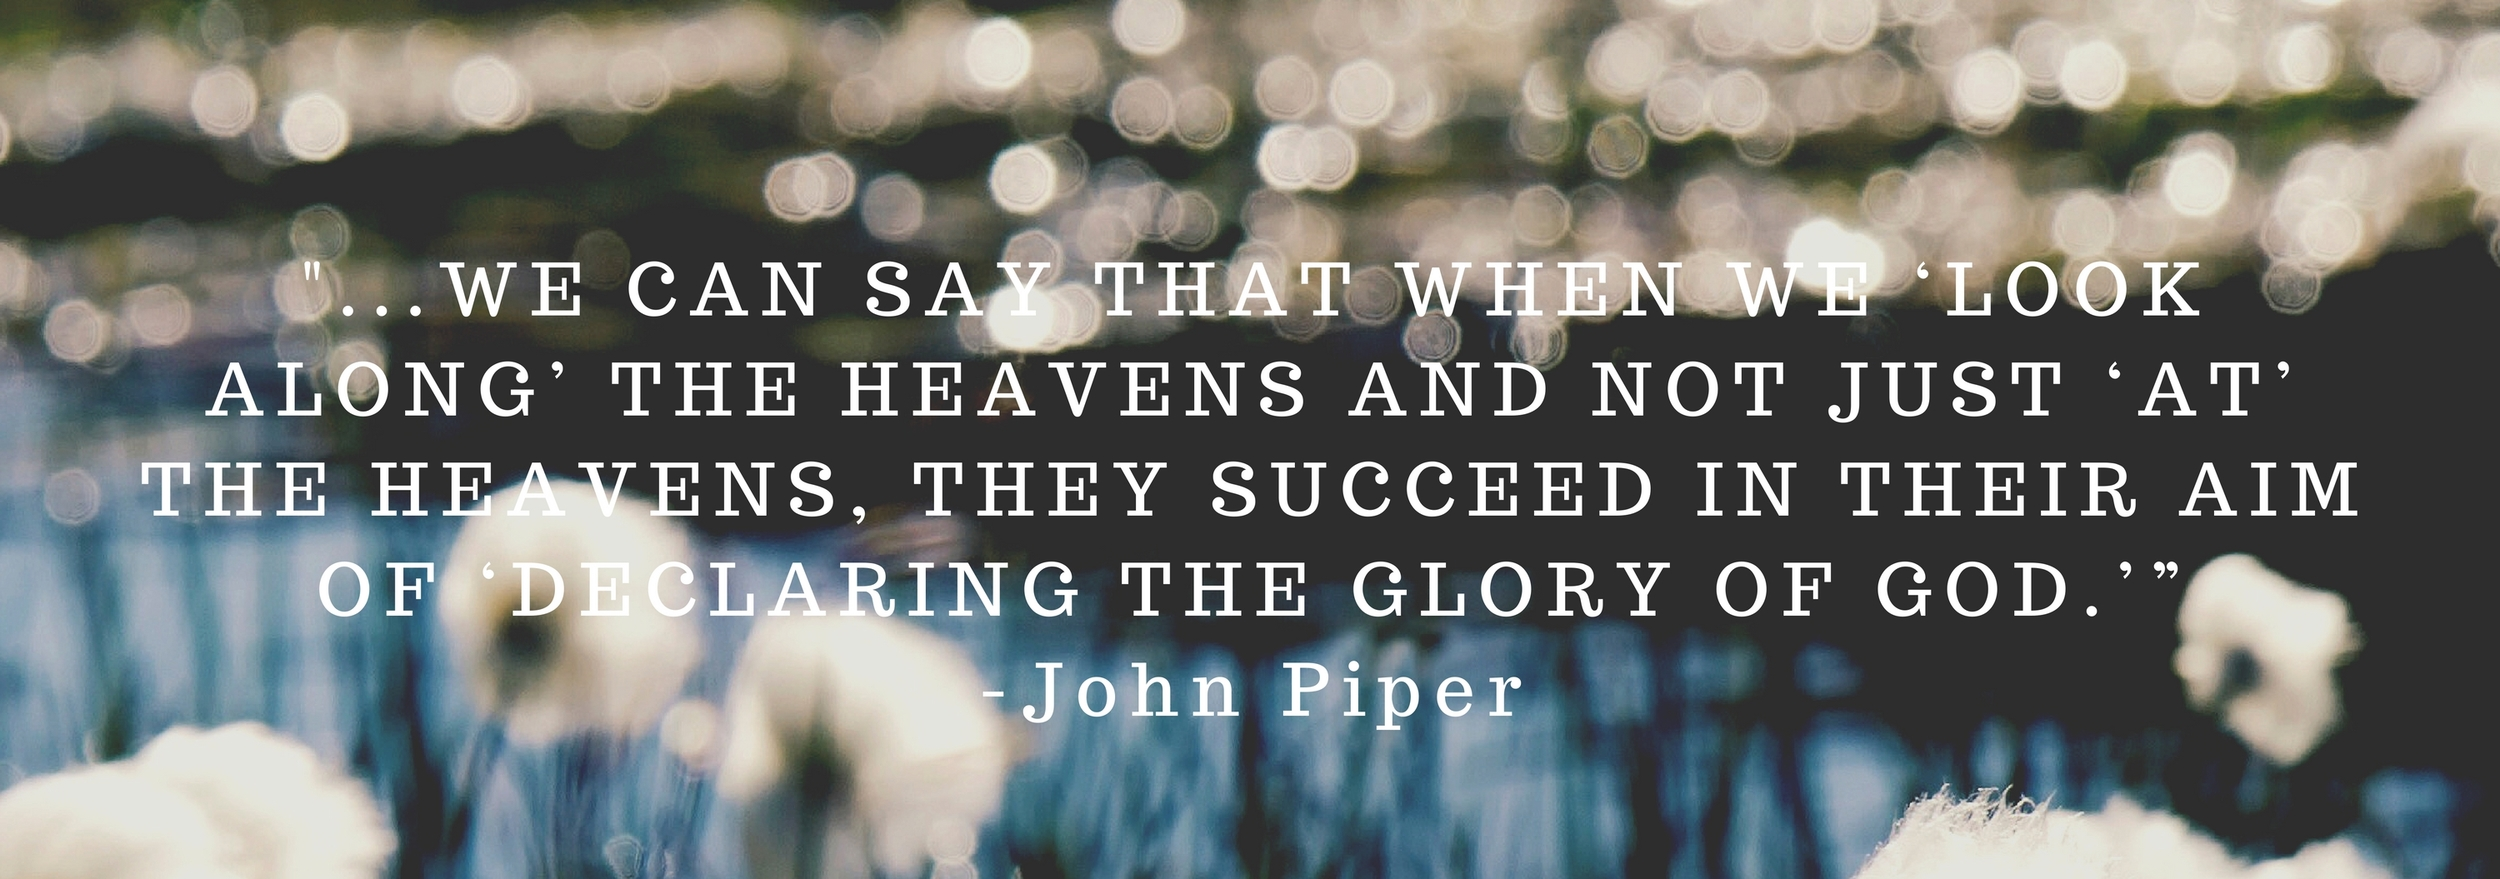 "-...WE CAN SAY THAT WHEN WE 'LOOK ALONG' THE HEAVENS AND NOT JUST 'AT' THE HEAVENS, THEY SUCCEED IN THEIR AIM OF 'DECLARING THE GLORY OF GOD.""-John Piper.jpg"